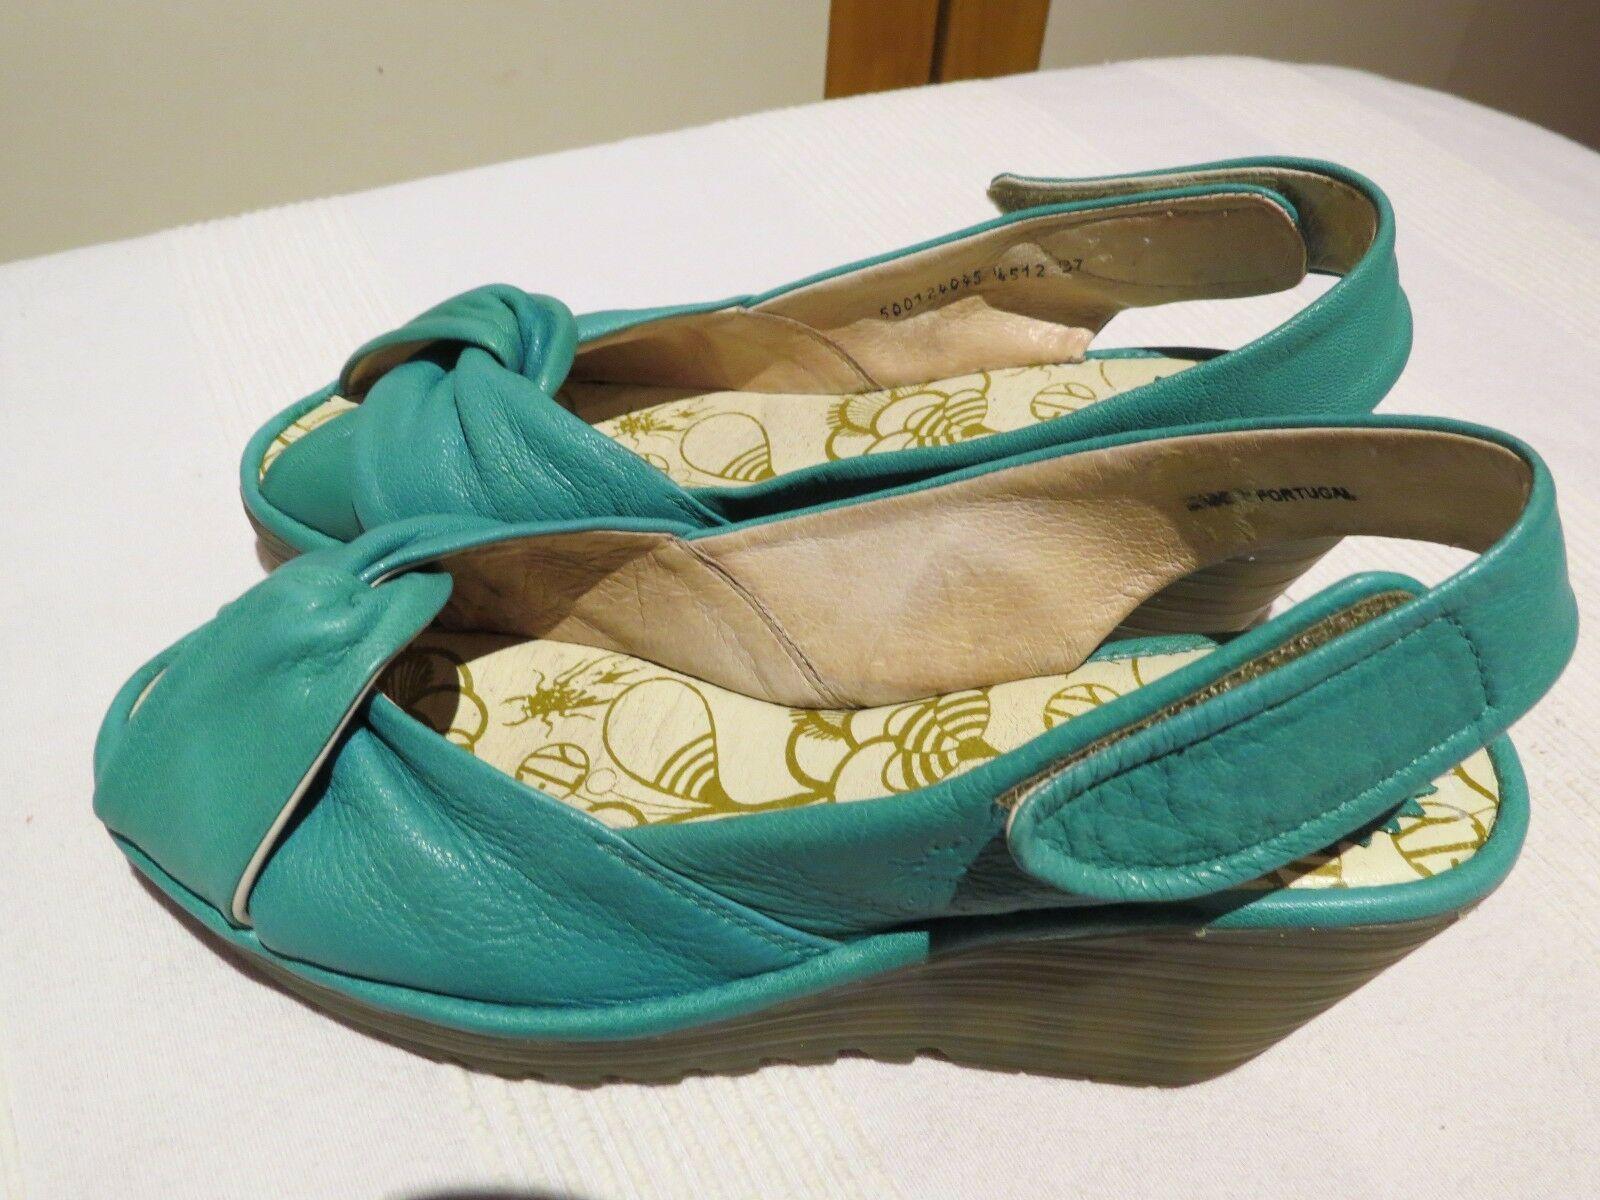 FLY LONDON 'YAKIN' PEACOCK LEATHER WEDGE SLINGBACK SANDALS UK 4 EUR 37